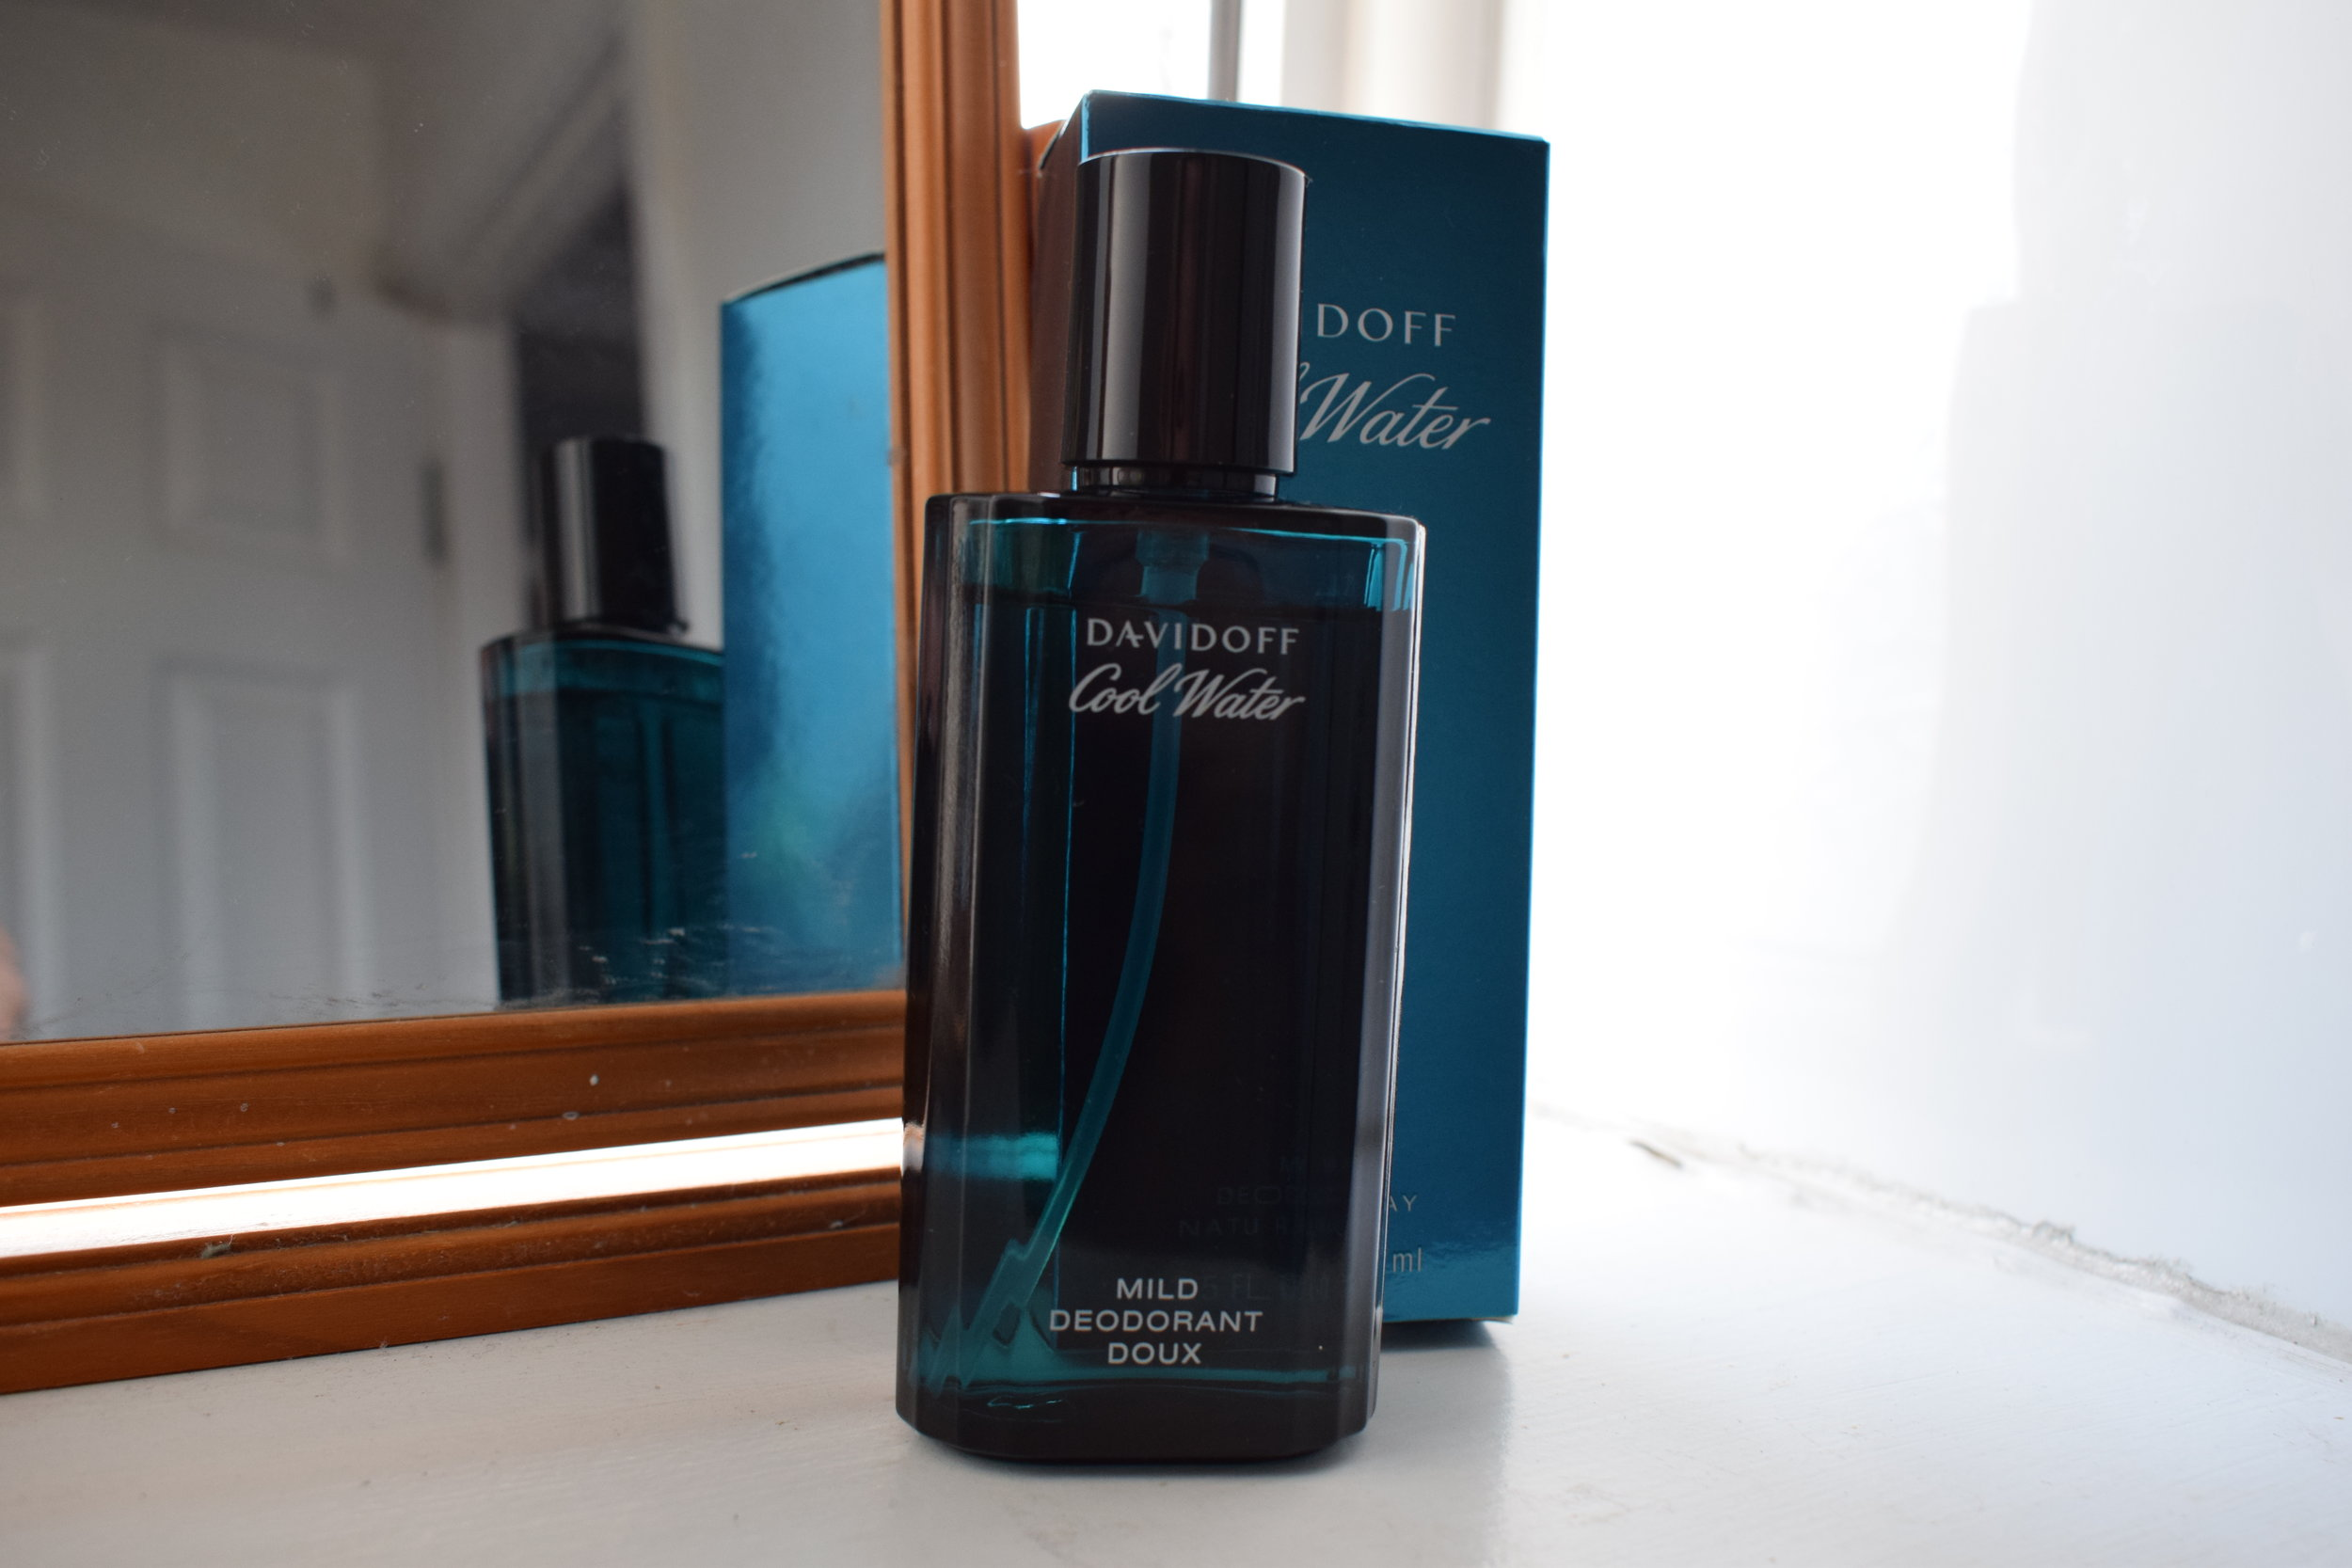 Davidoff Cool Water Mild Deodorant Doux after shave spray